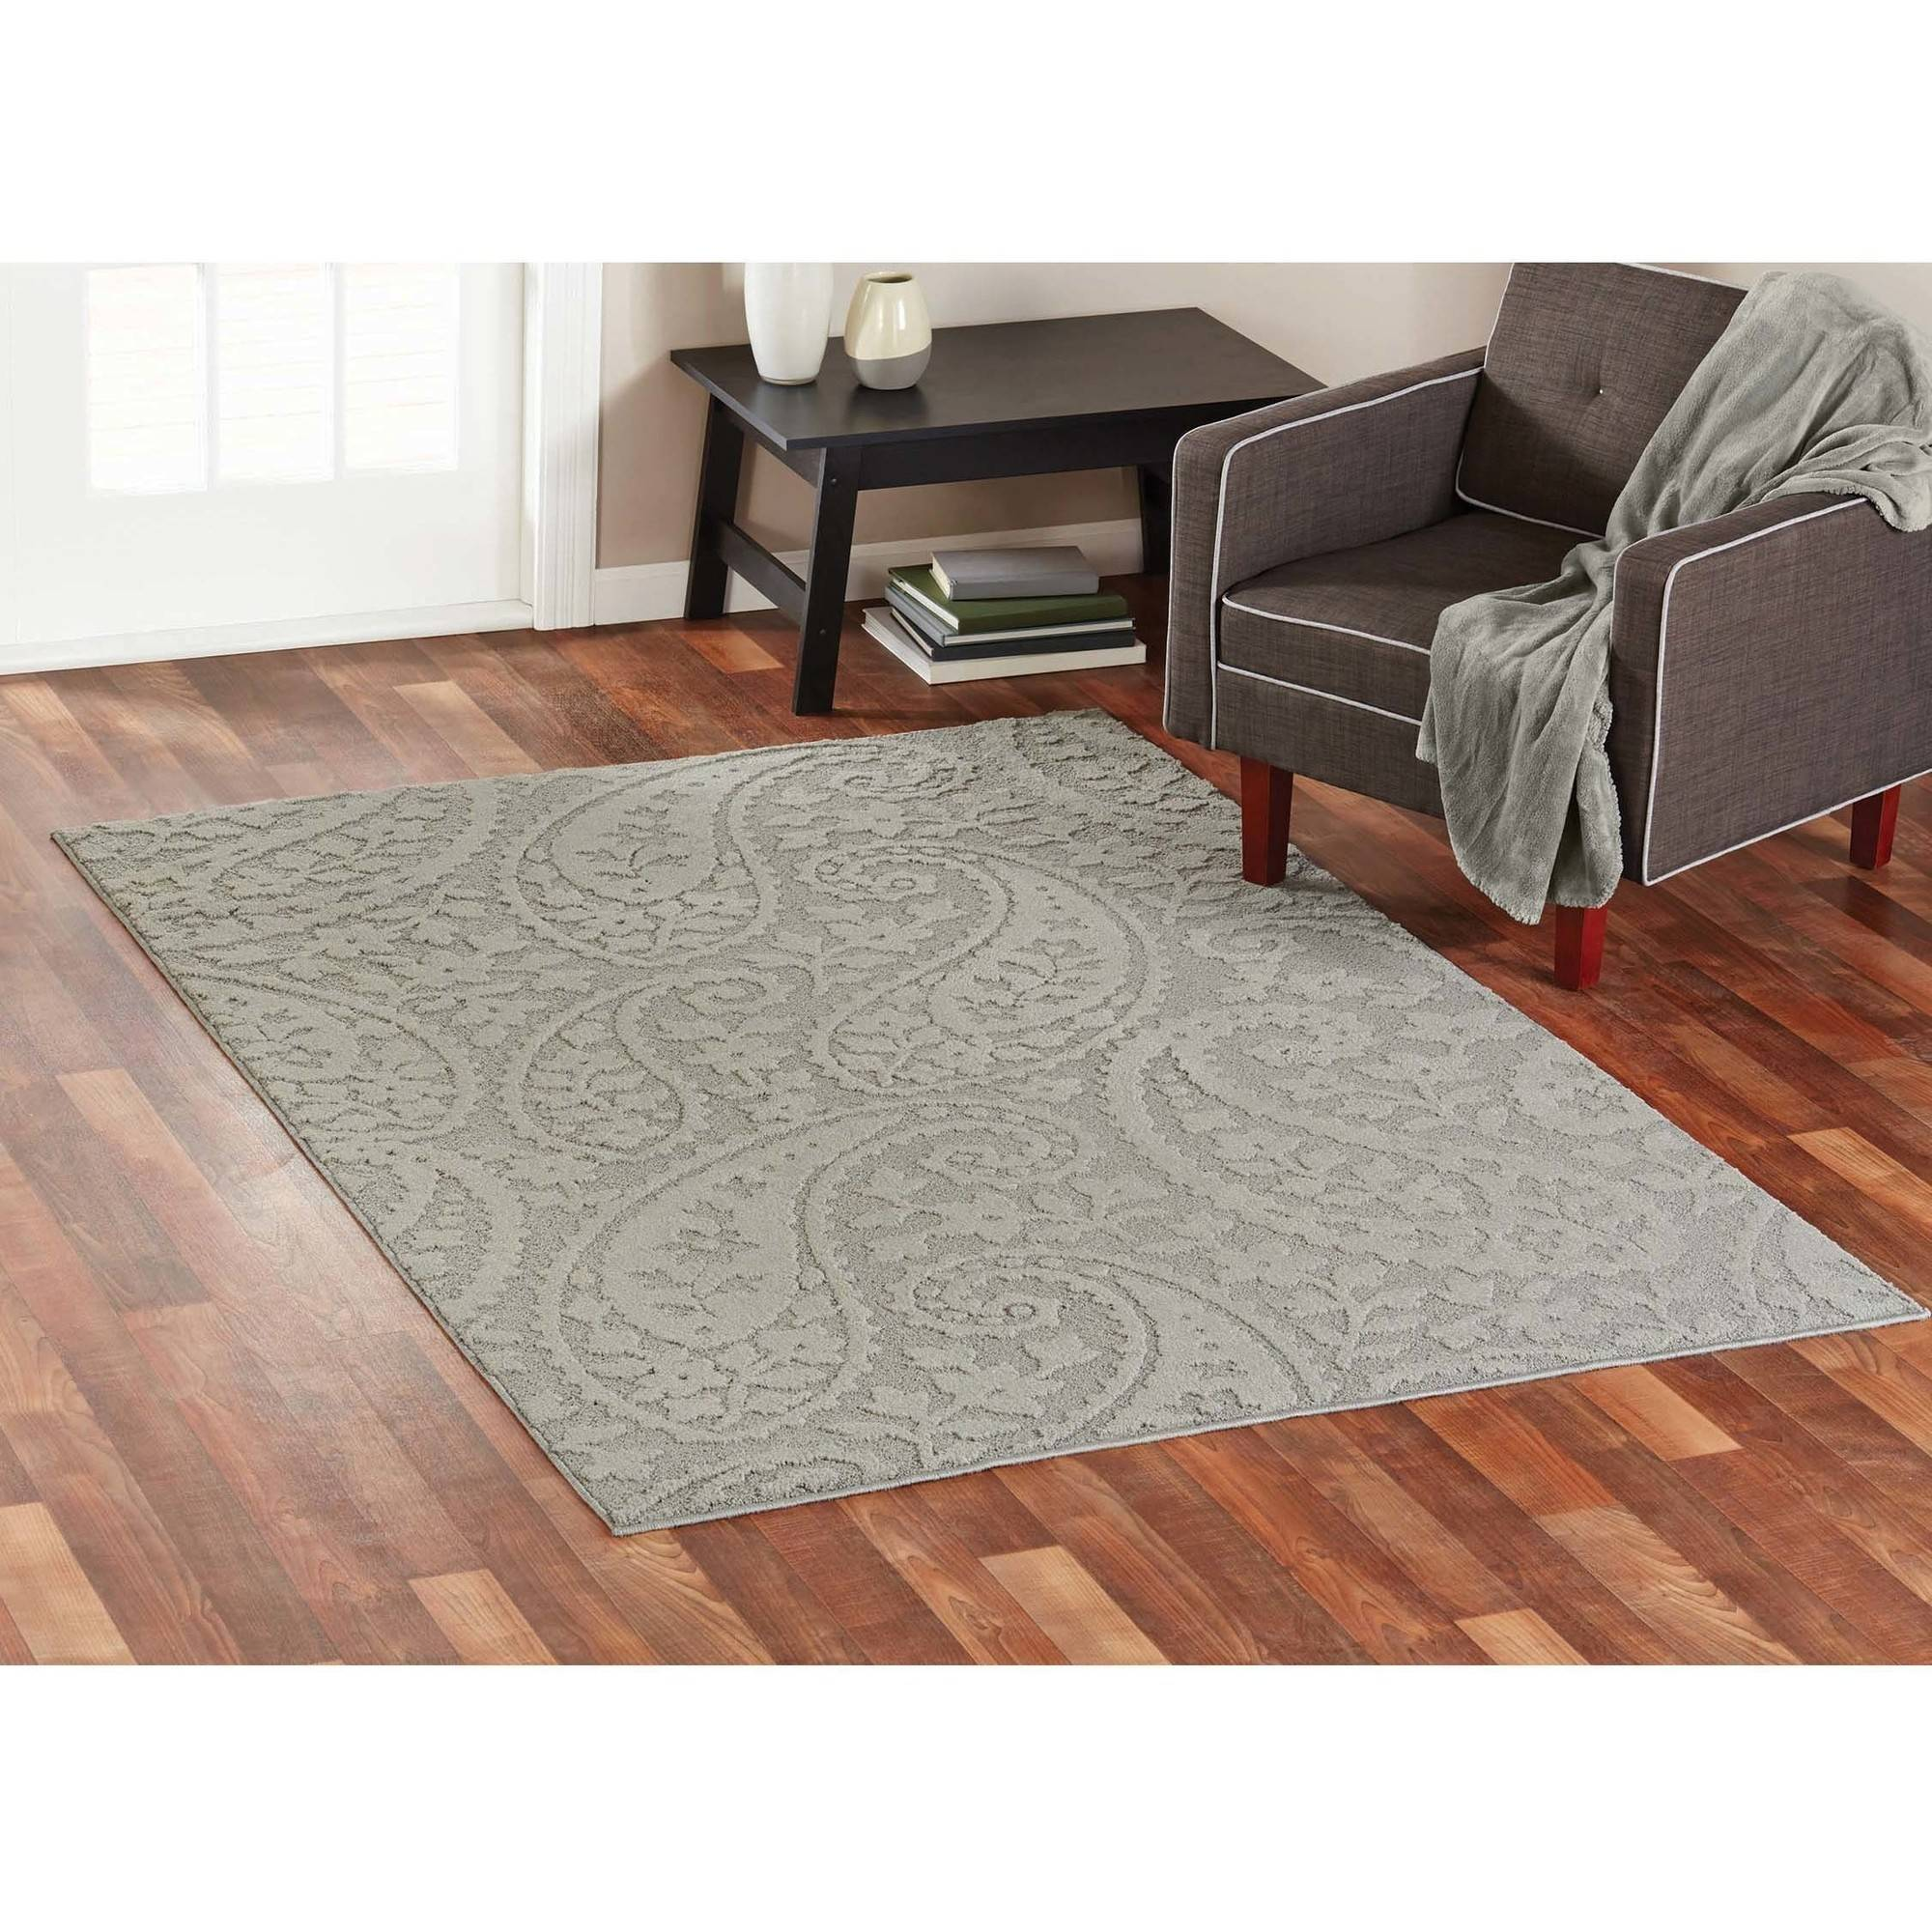 Mainstays Greyhilow Area Rug, Multiple Colors